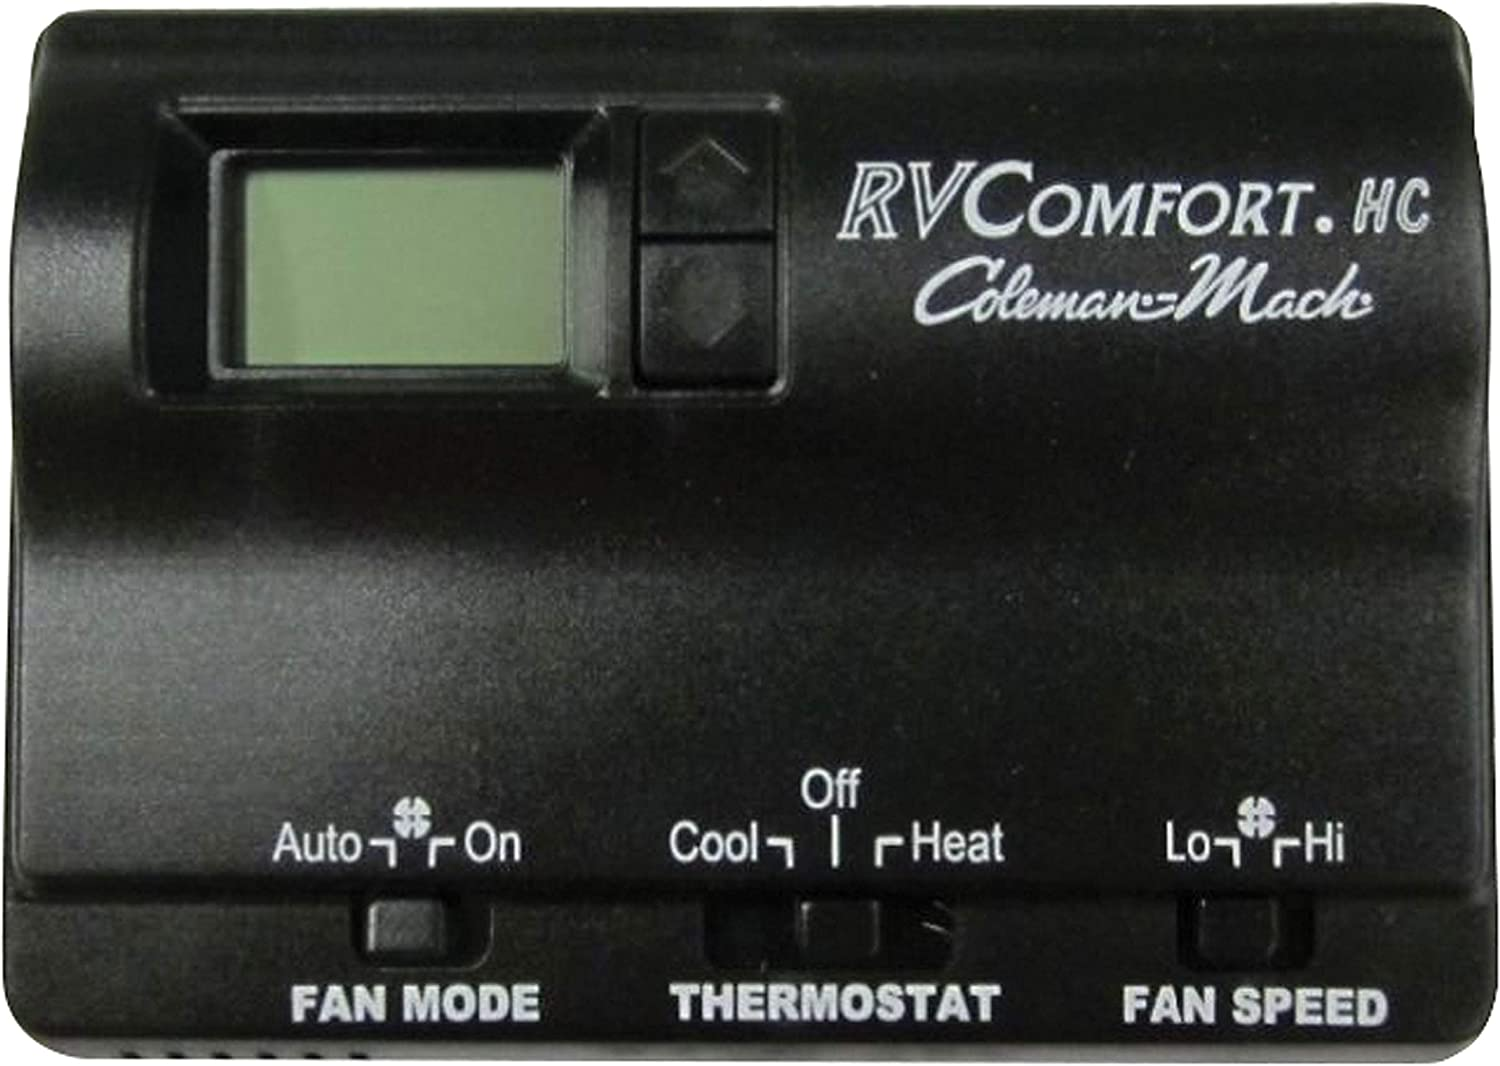 Coleman Mach 15 Thermostat Wiring Diagram from images-na.ssl-images-amazon.com